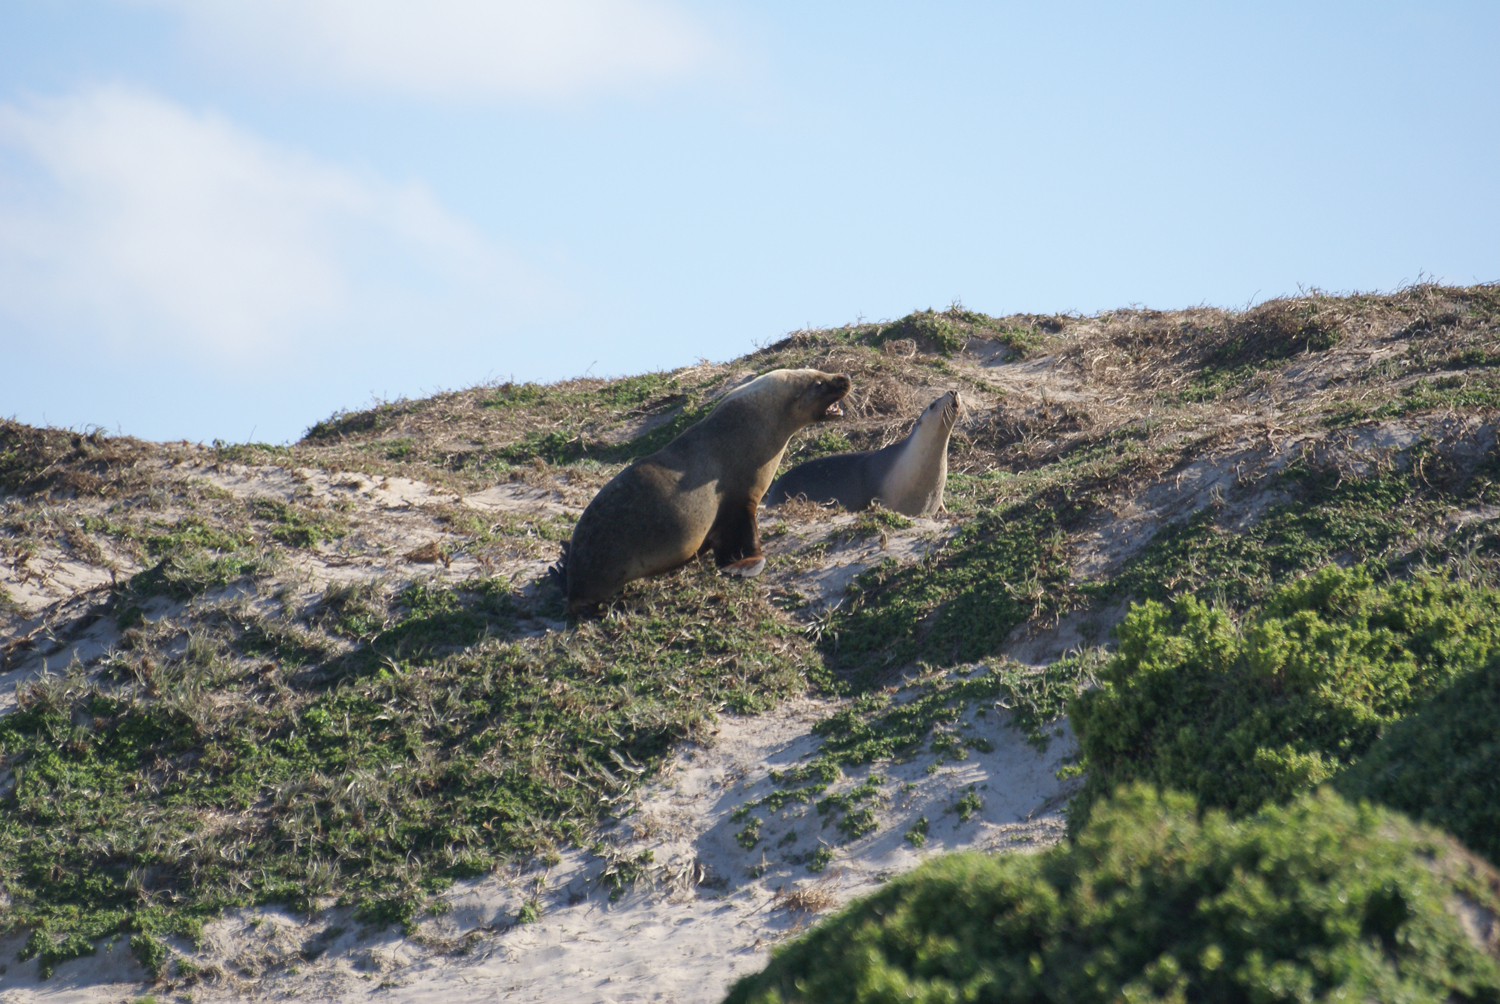 Sea lions at Seal Bay